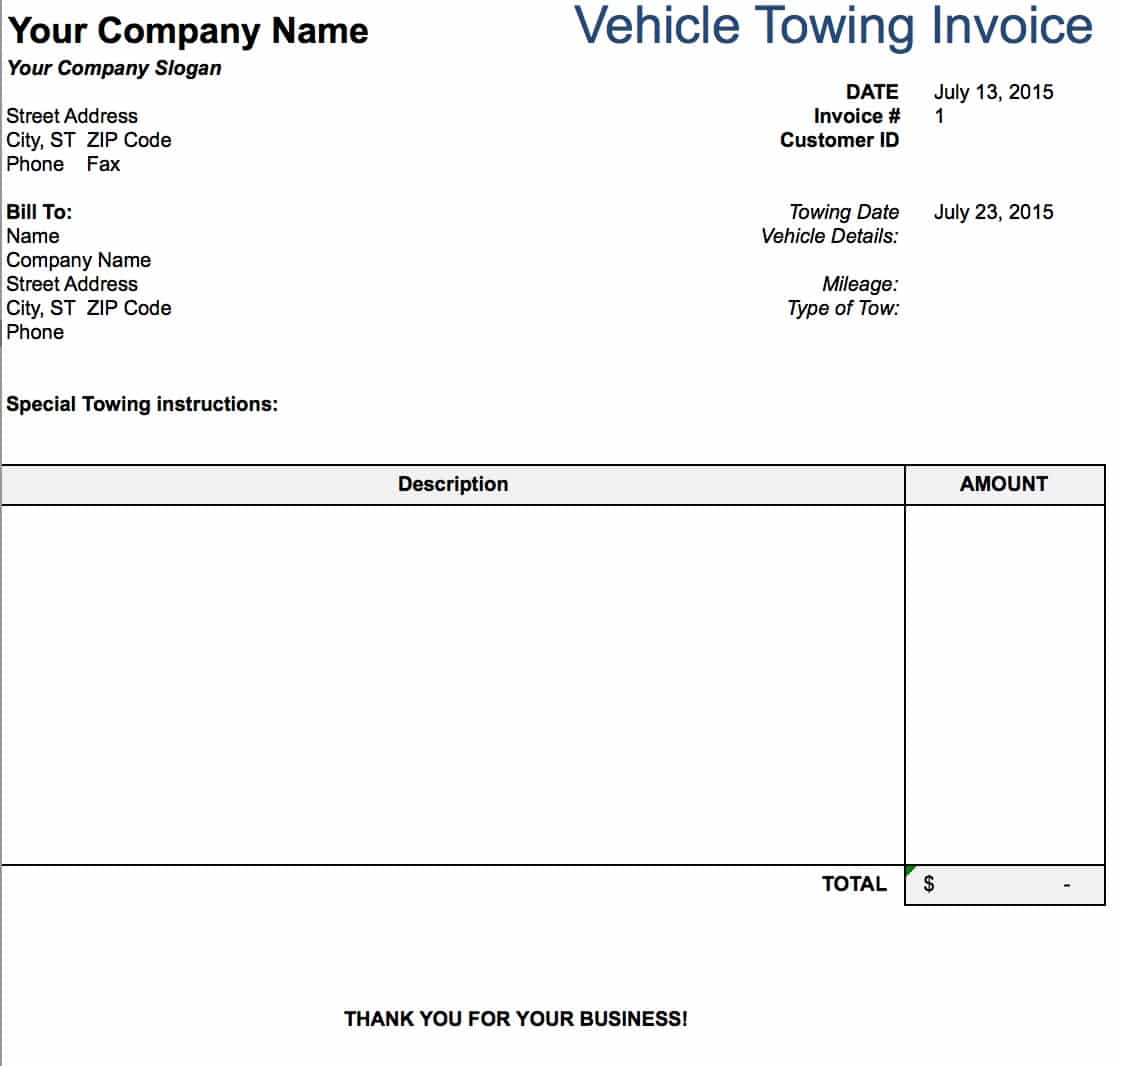 Free Tow Service Invoice Template Excel PDF Word Doc - Make an invoice free for service business